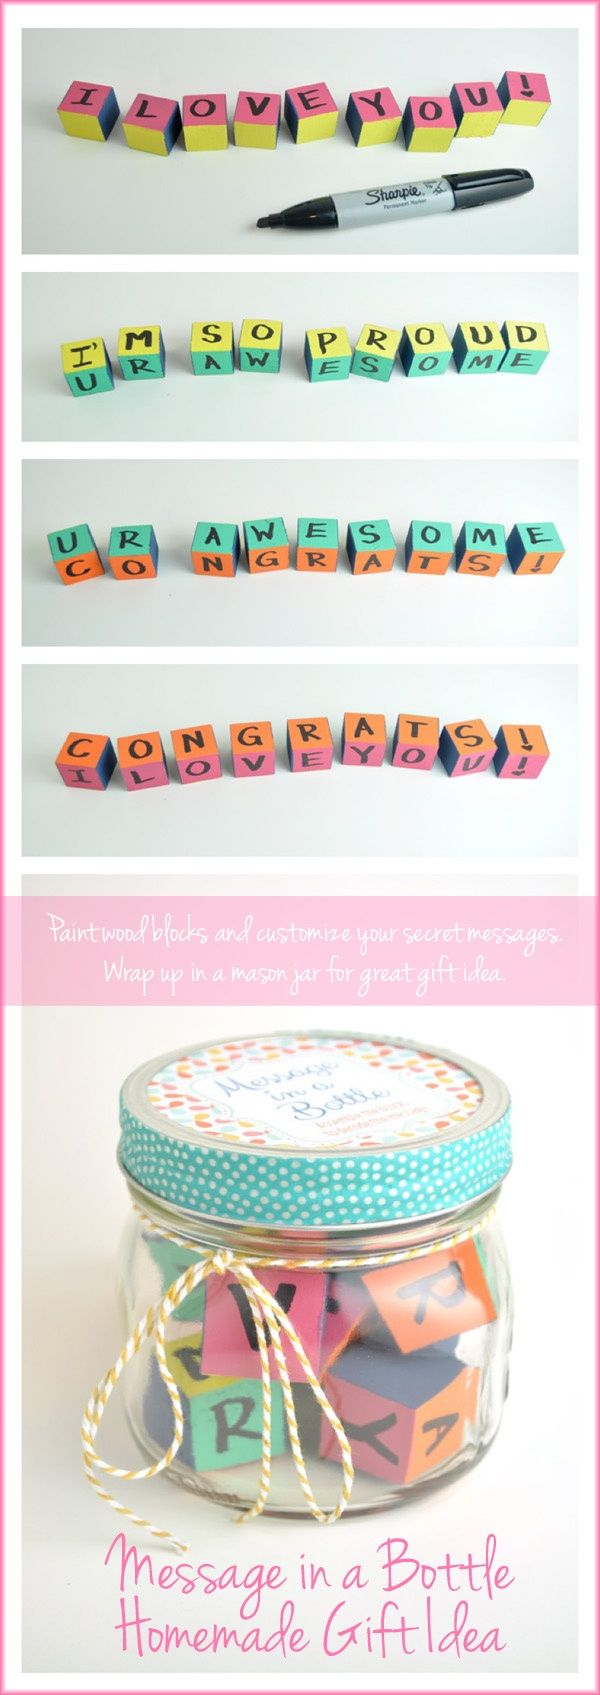 Pin By Sussle On Diy Ideas Mason Jar Christmas Gifts